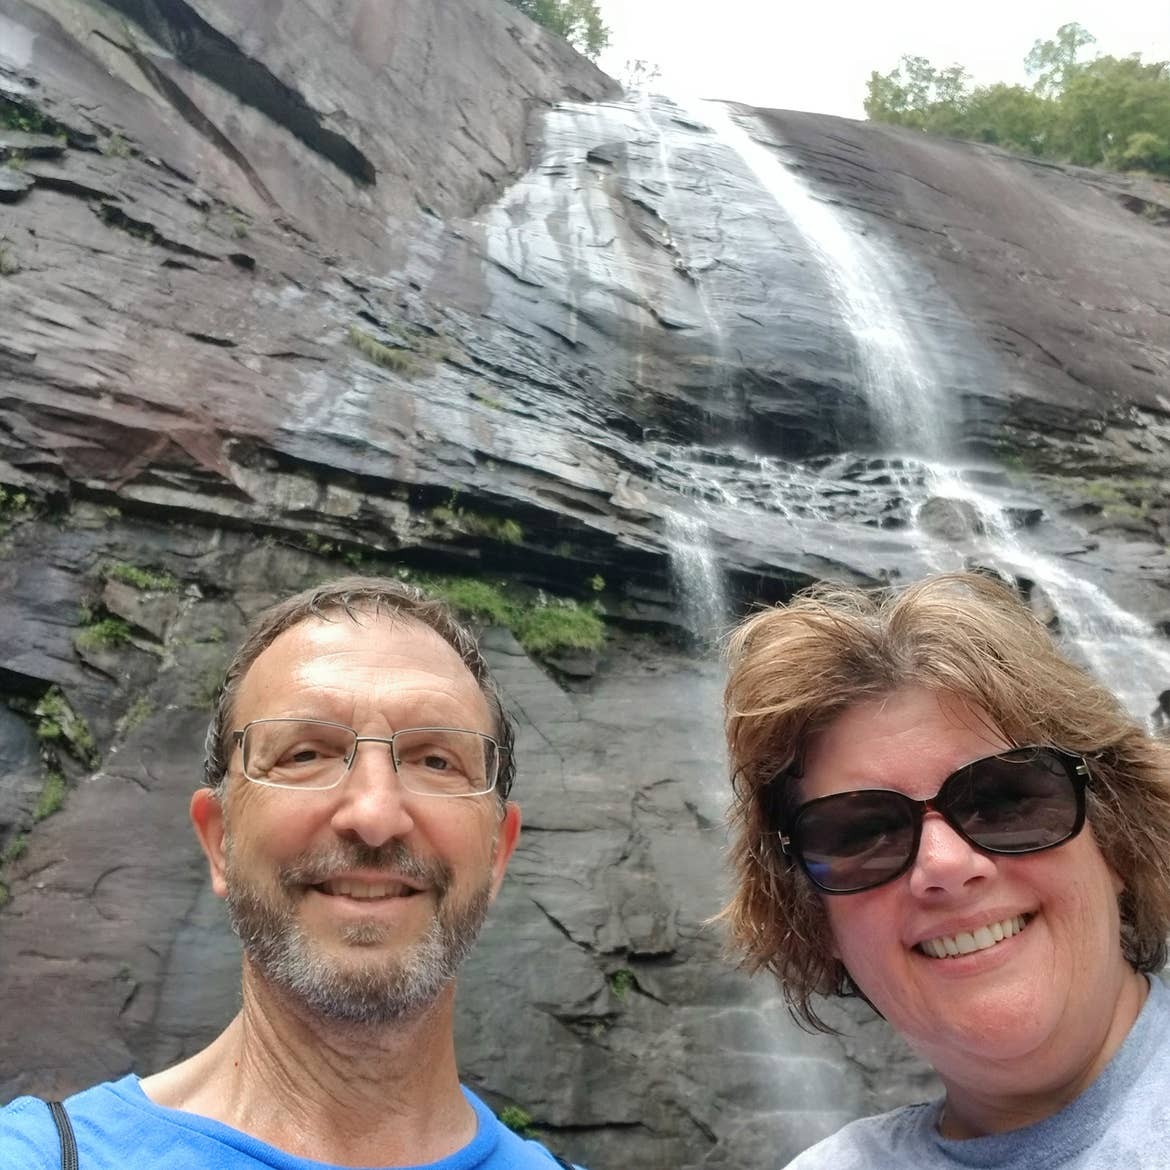 A caucasian male wearing a blue t-shirt (left) and a caucasian female wearing a light colored t-shirt (right) stand under the Hickory Nut Falls in Chimney Rock State Park, North Carolina.